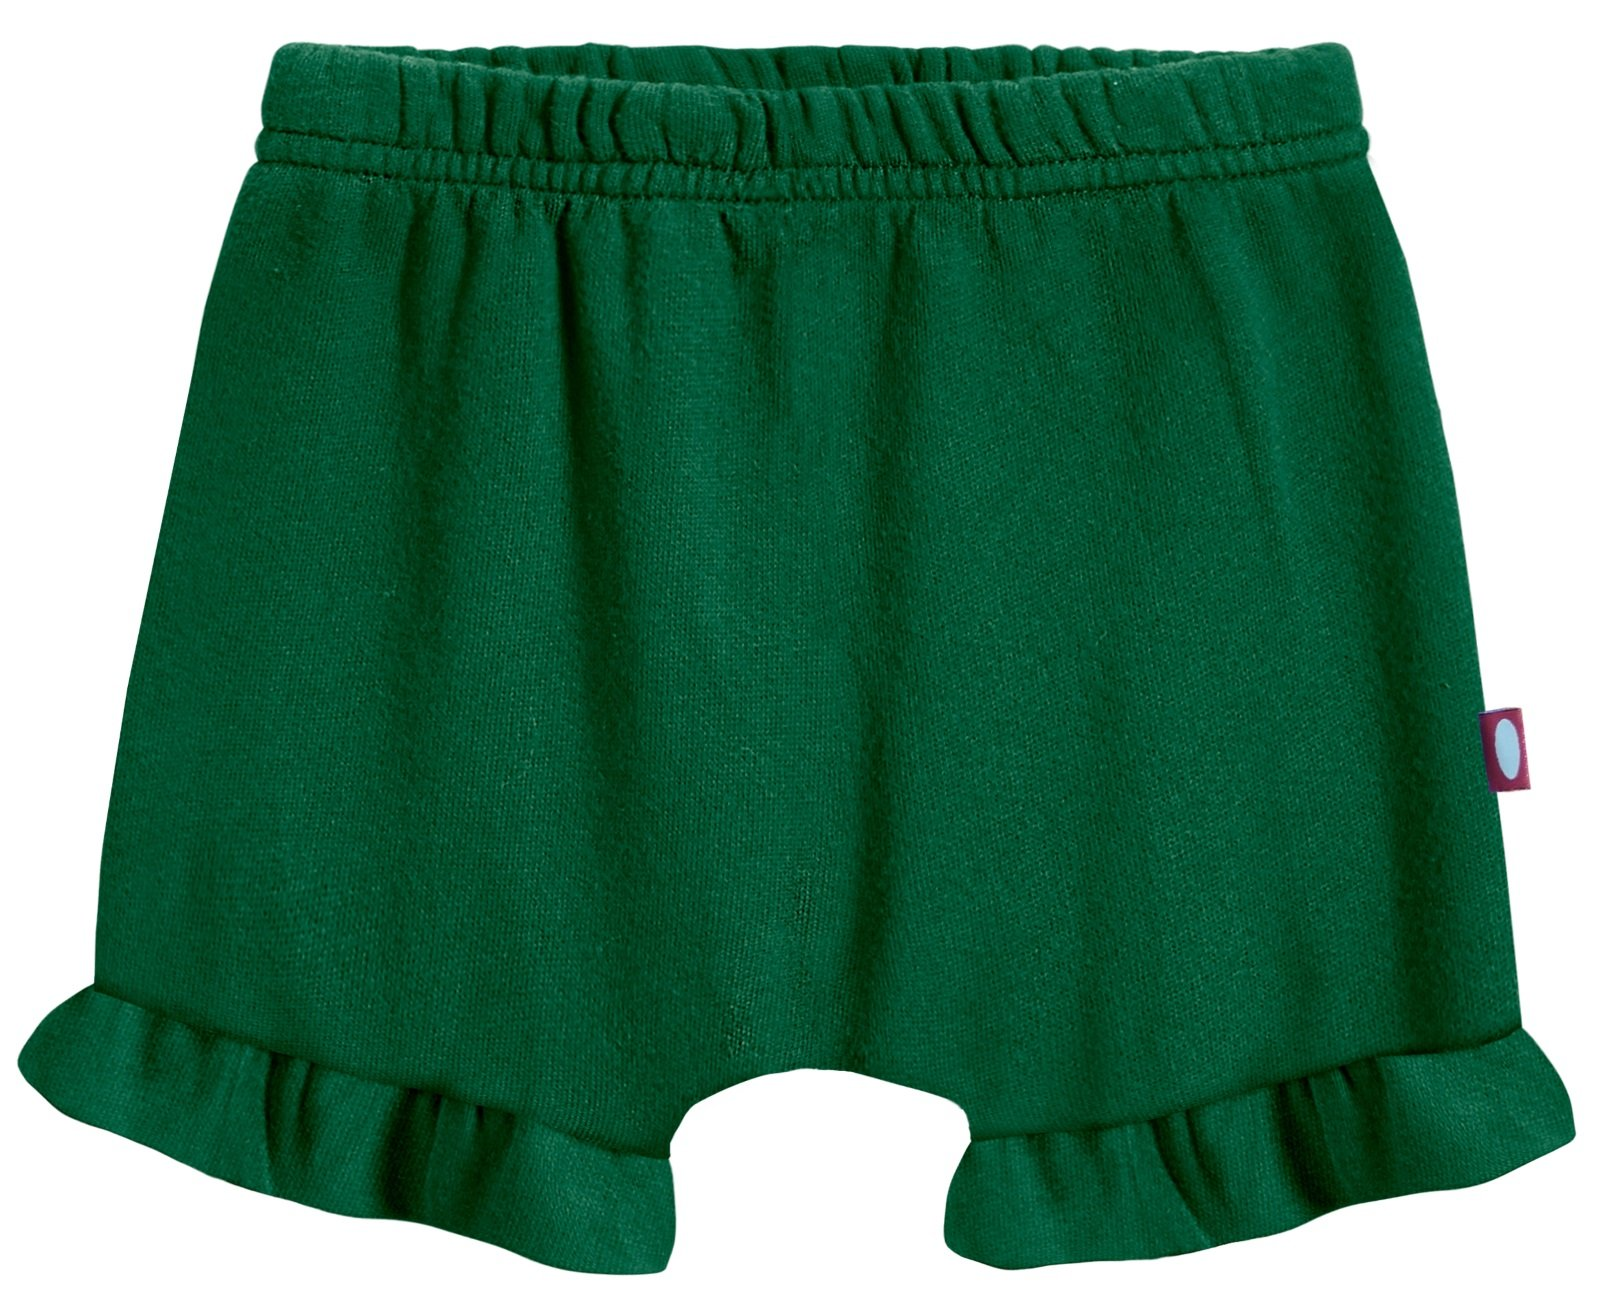 City Threads Baby Girls' and Boys' Ruffled Diaper Covers Bloomers Soft Cotton Fashionable Cute, Forest Green, 9-12Months